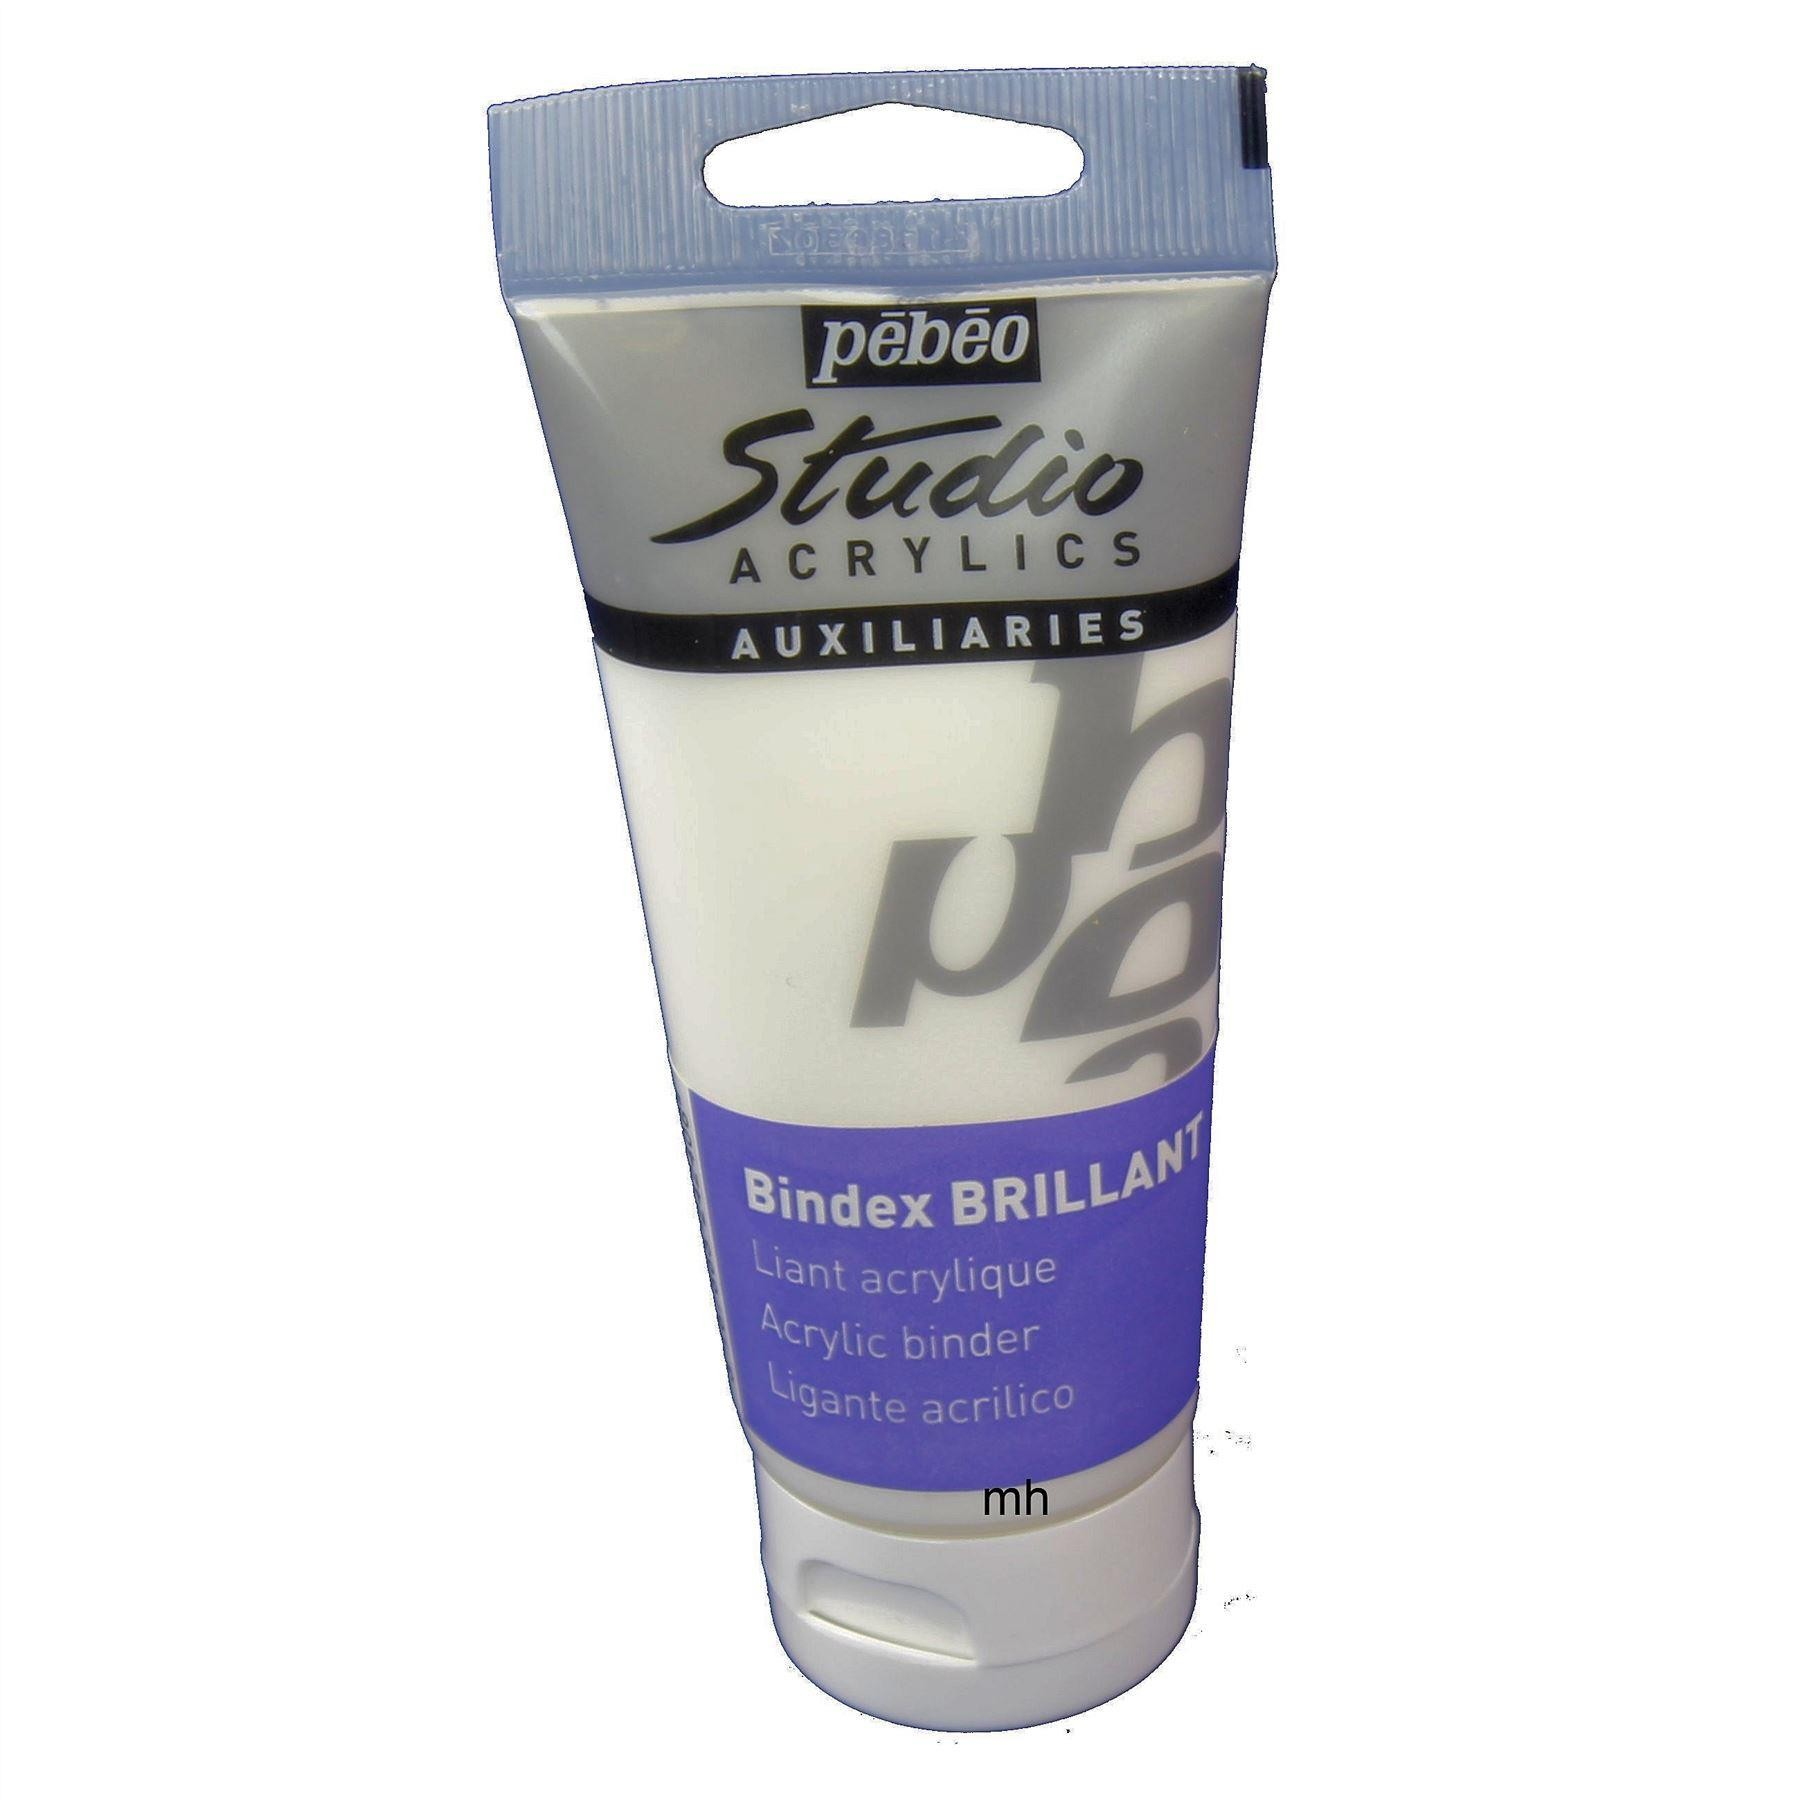 Pebeo Acrlic Binder Bindex Brillant